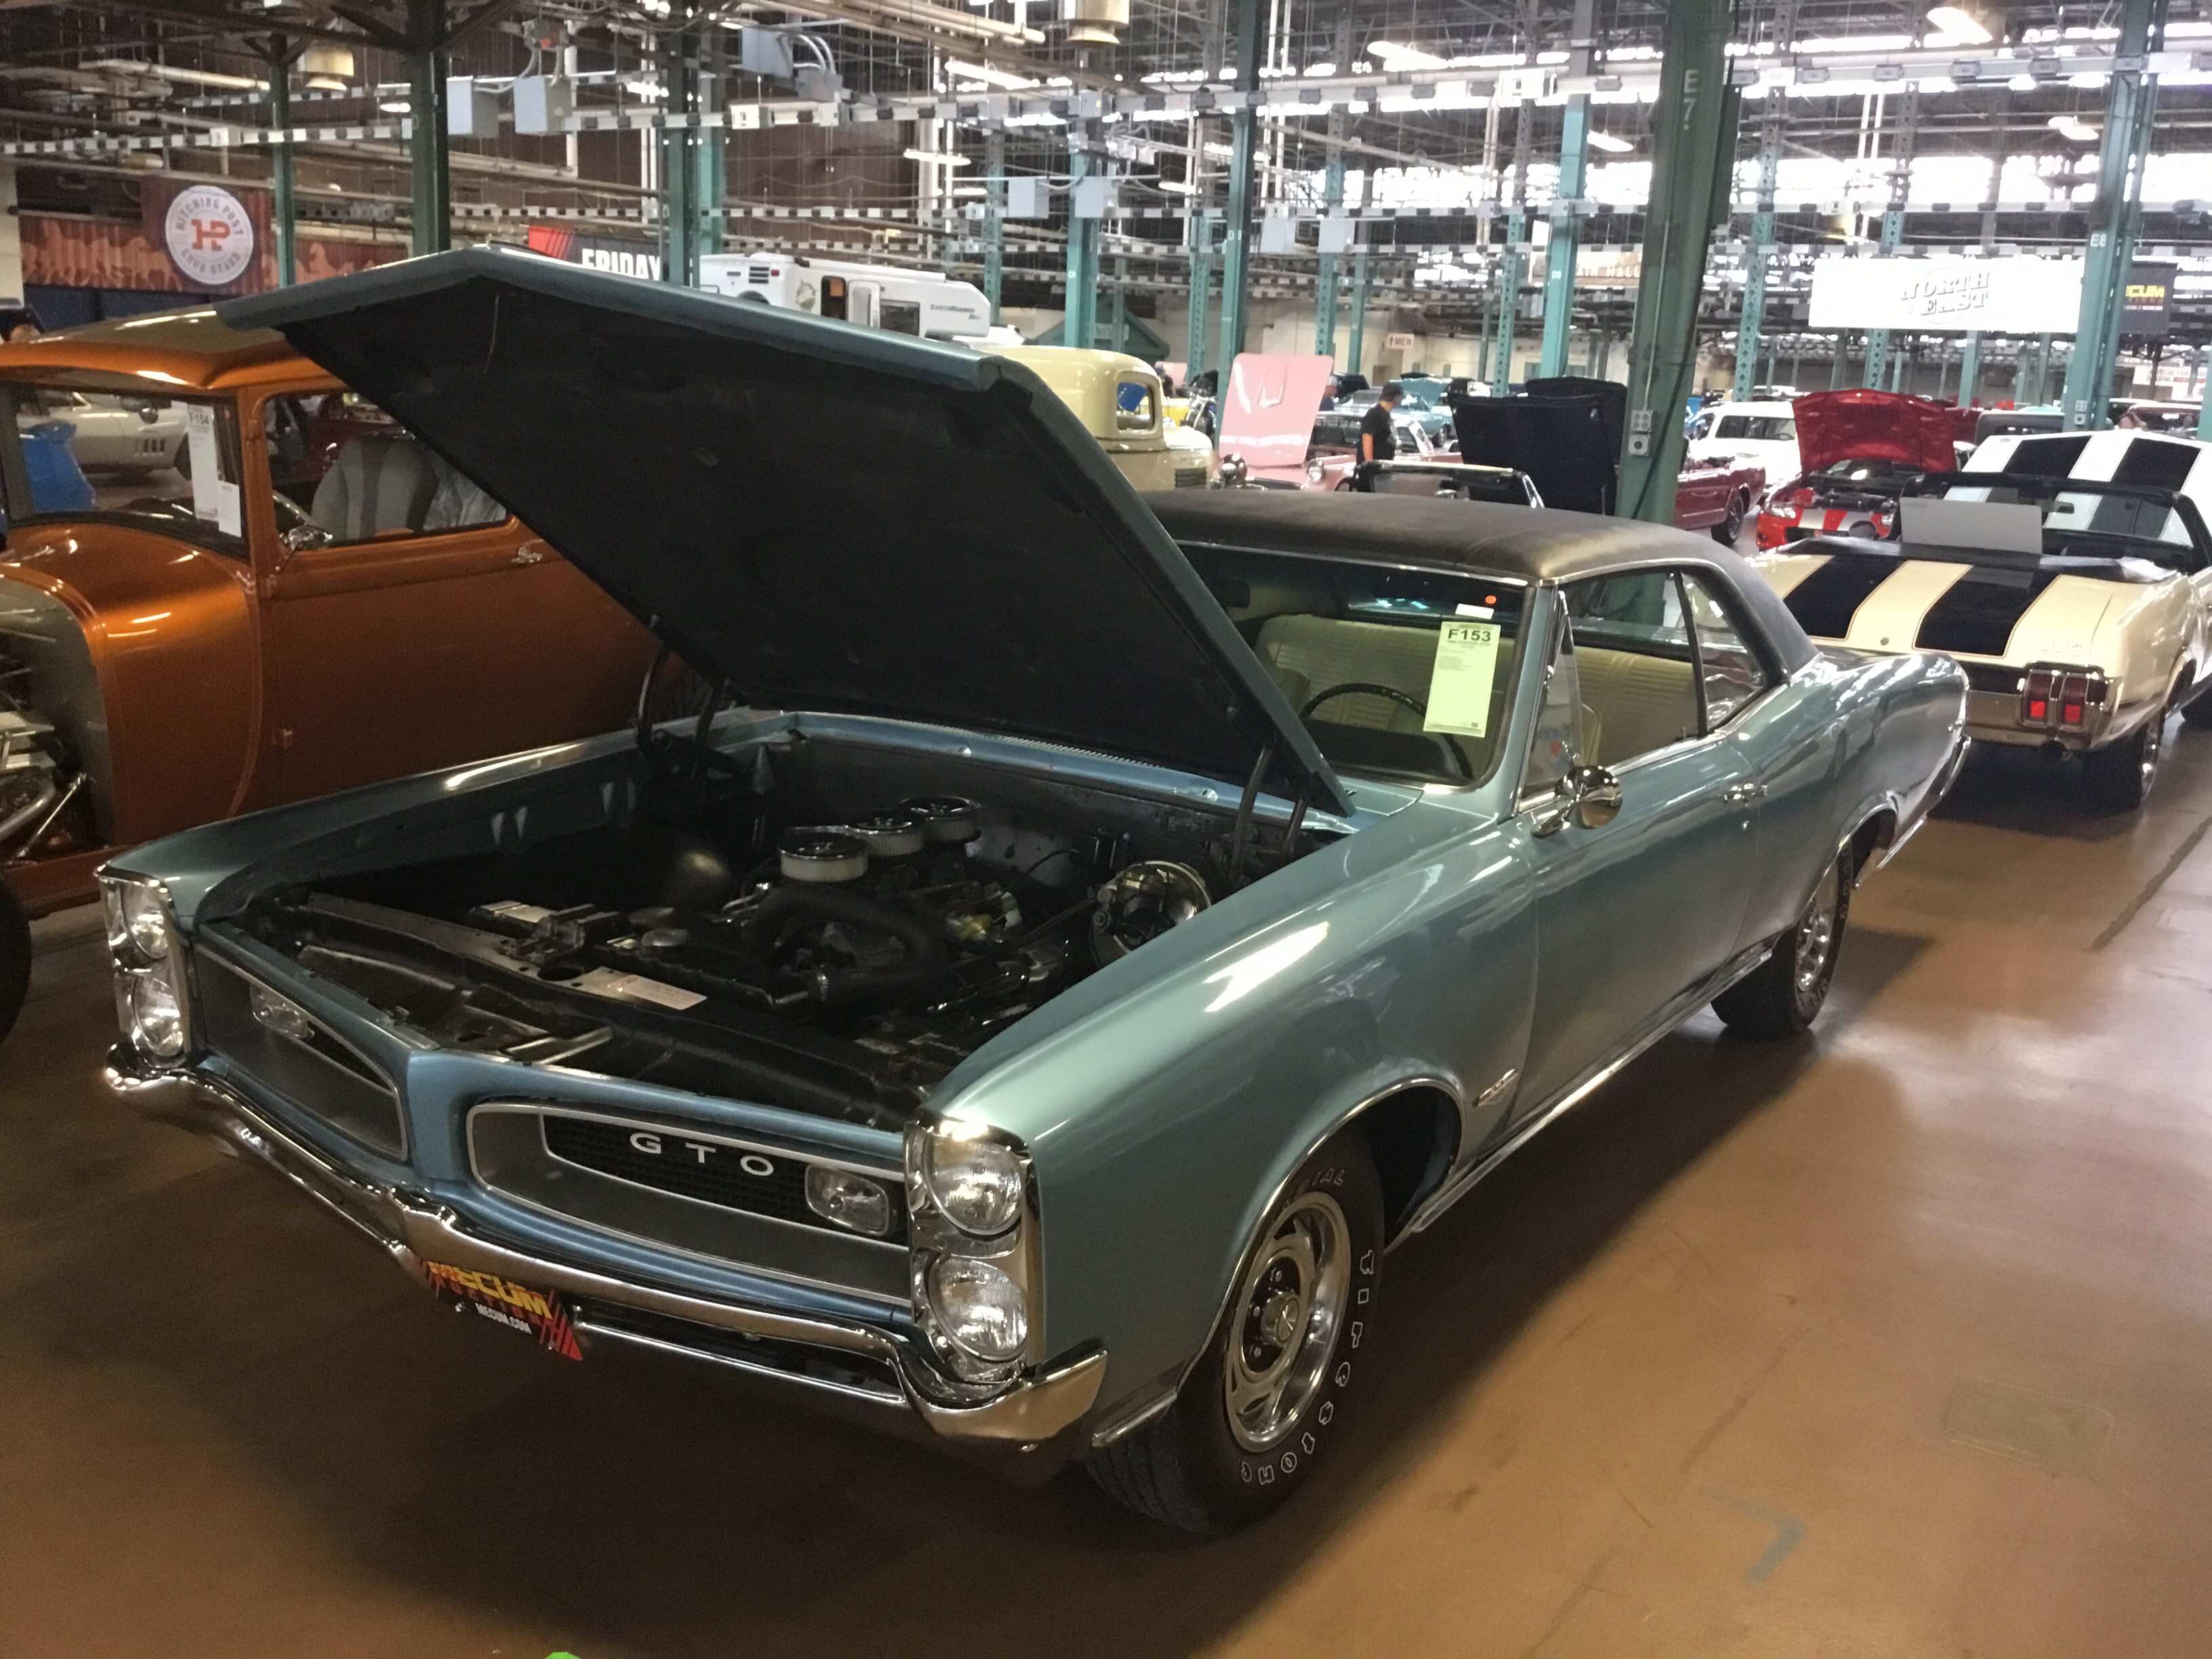 1966 Pontiac Gto Values Hagerty Valuation Tool V8 Engine With Tripower Carburetor Setup Hardtop Coupe